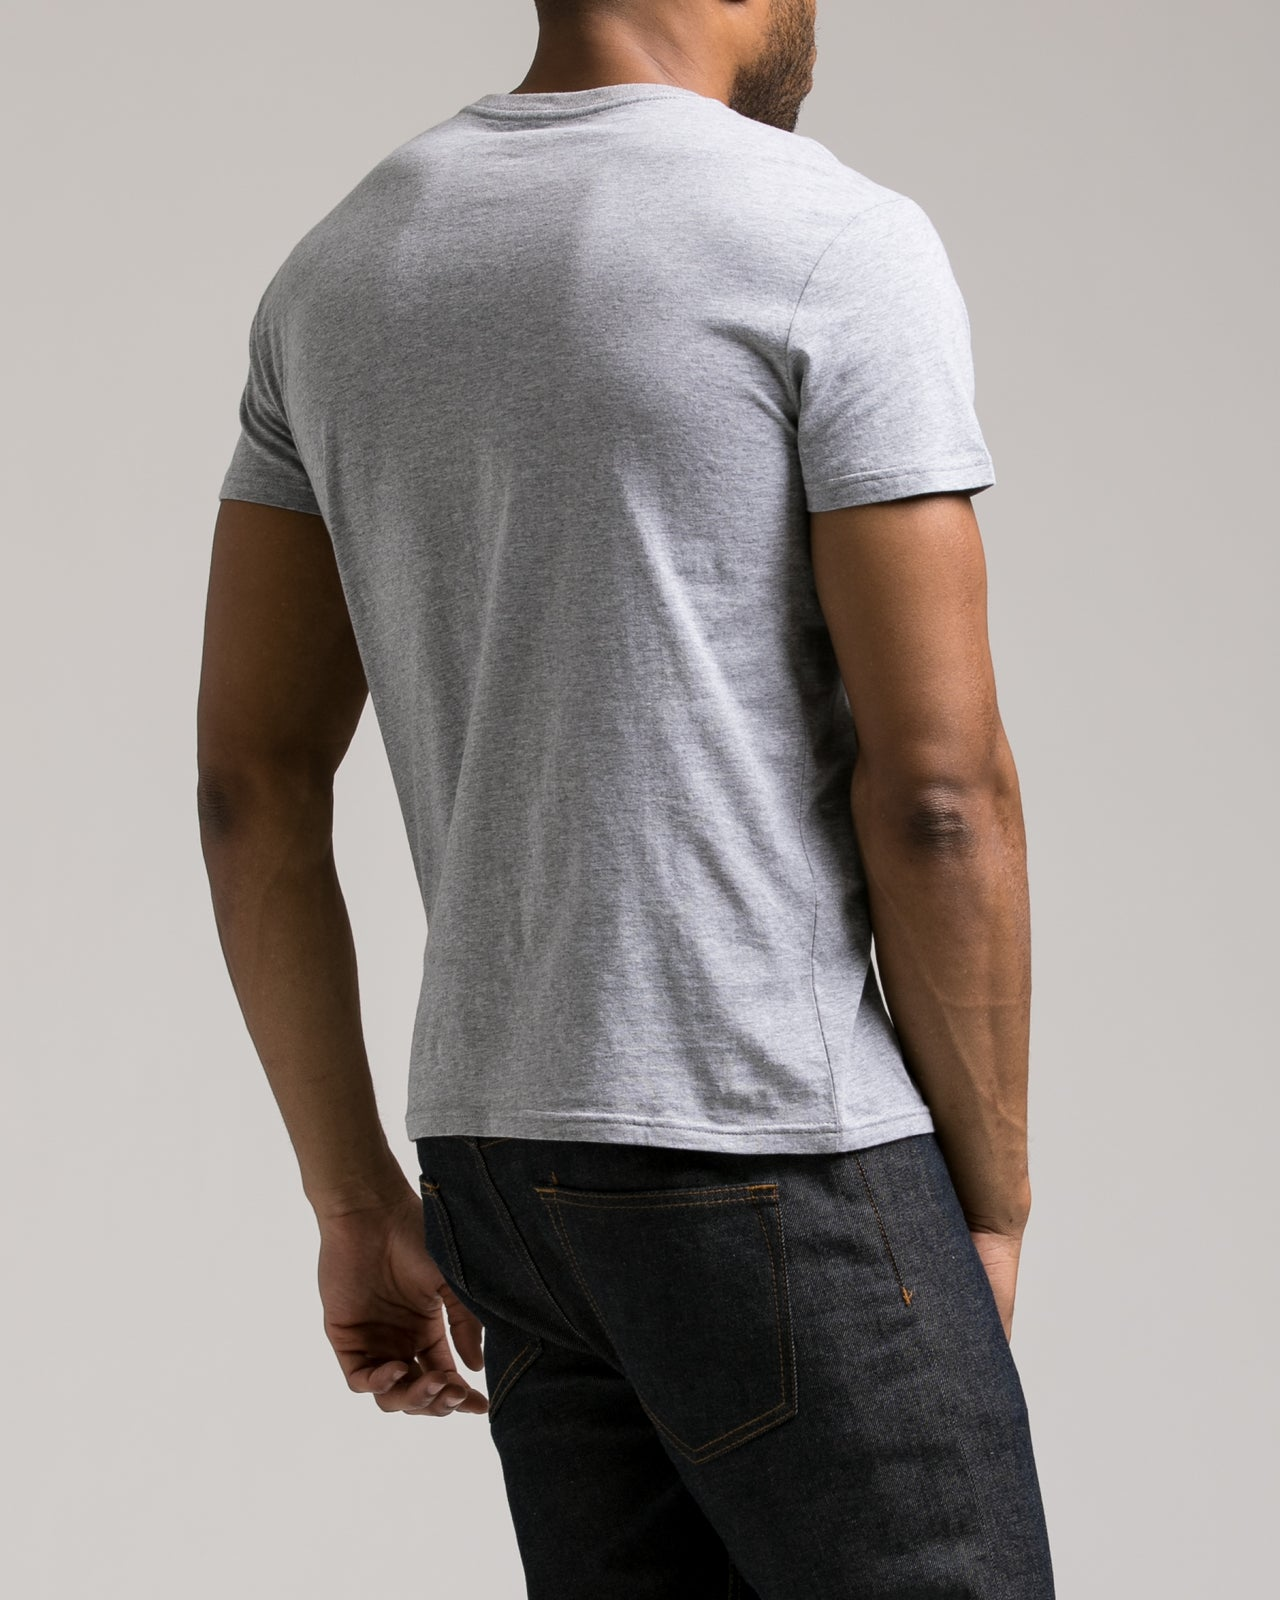 The Daily Tee 2.0 - Color: Heather Grey | Gray